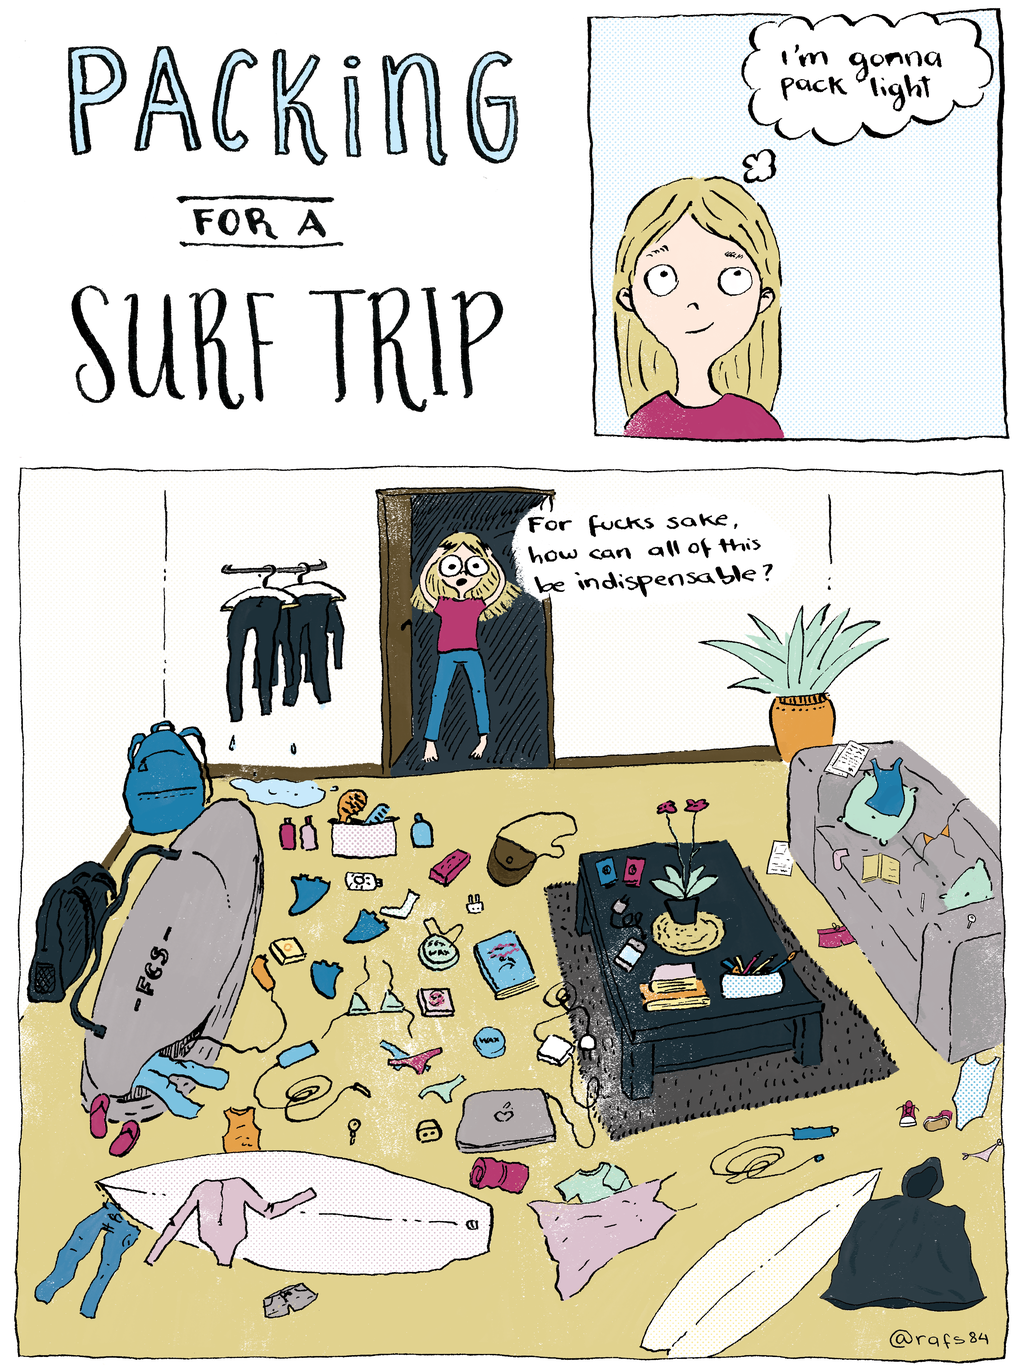 Surf trip packing